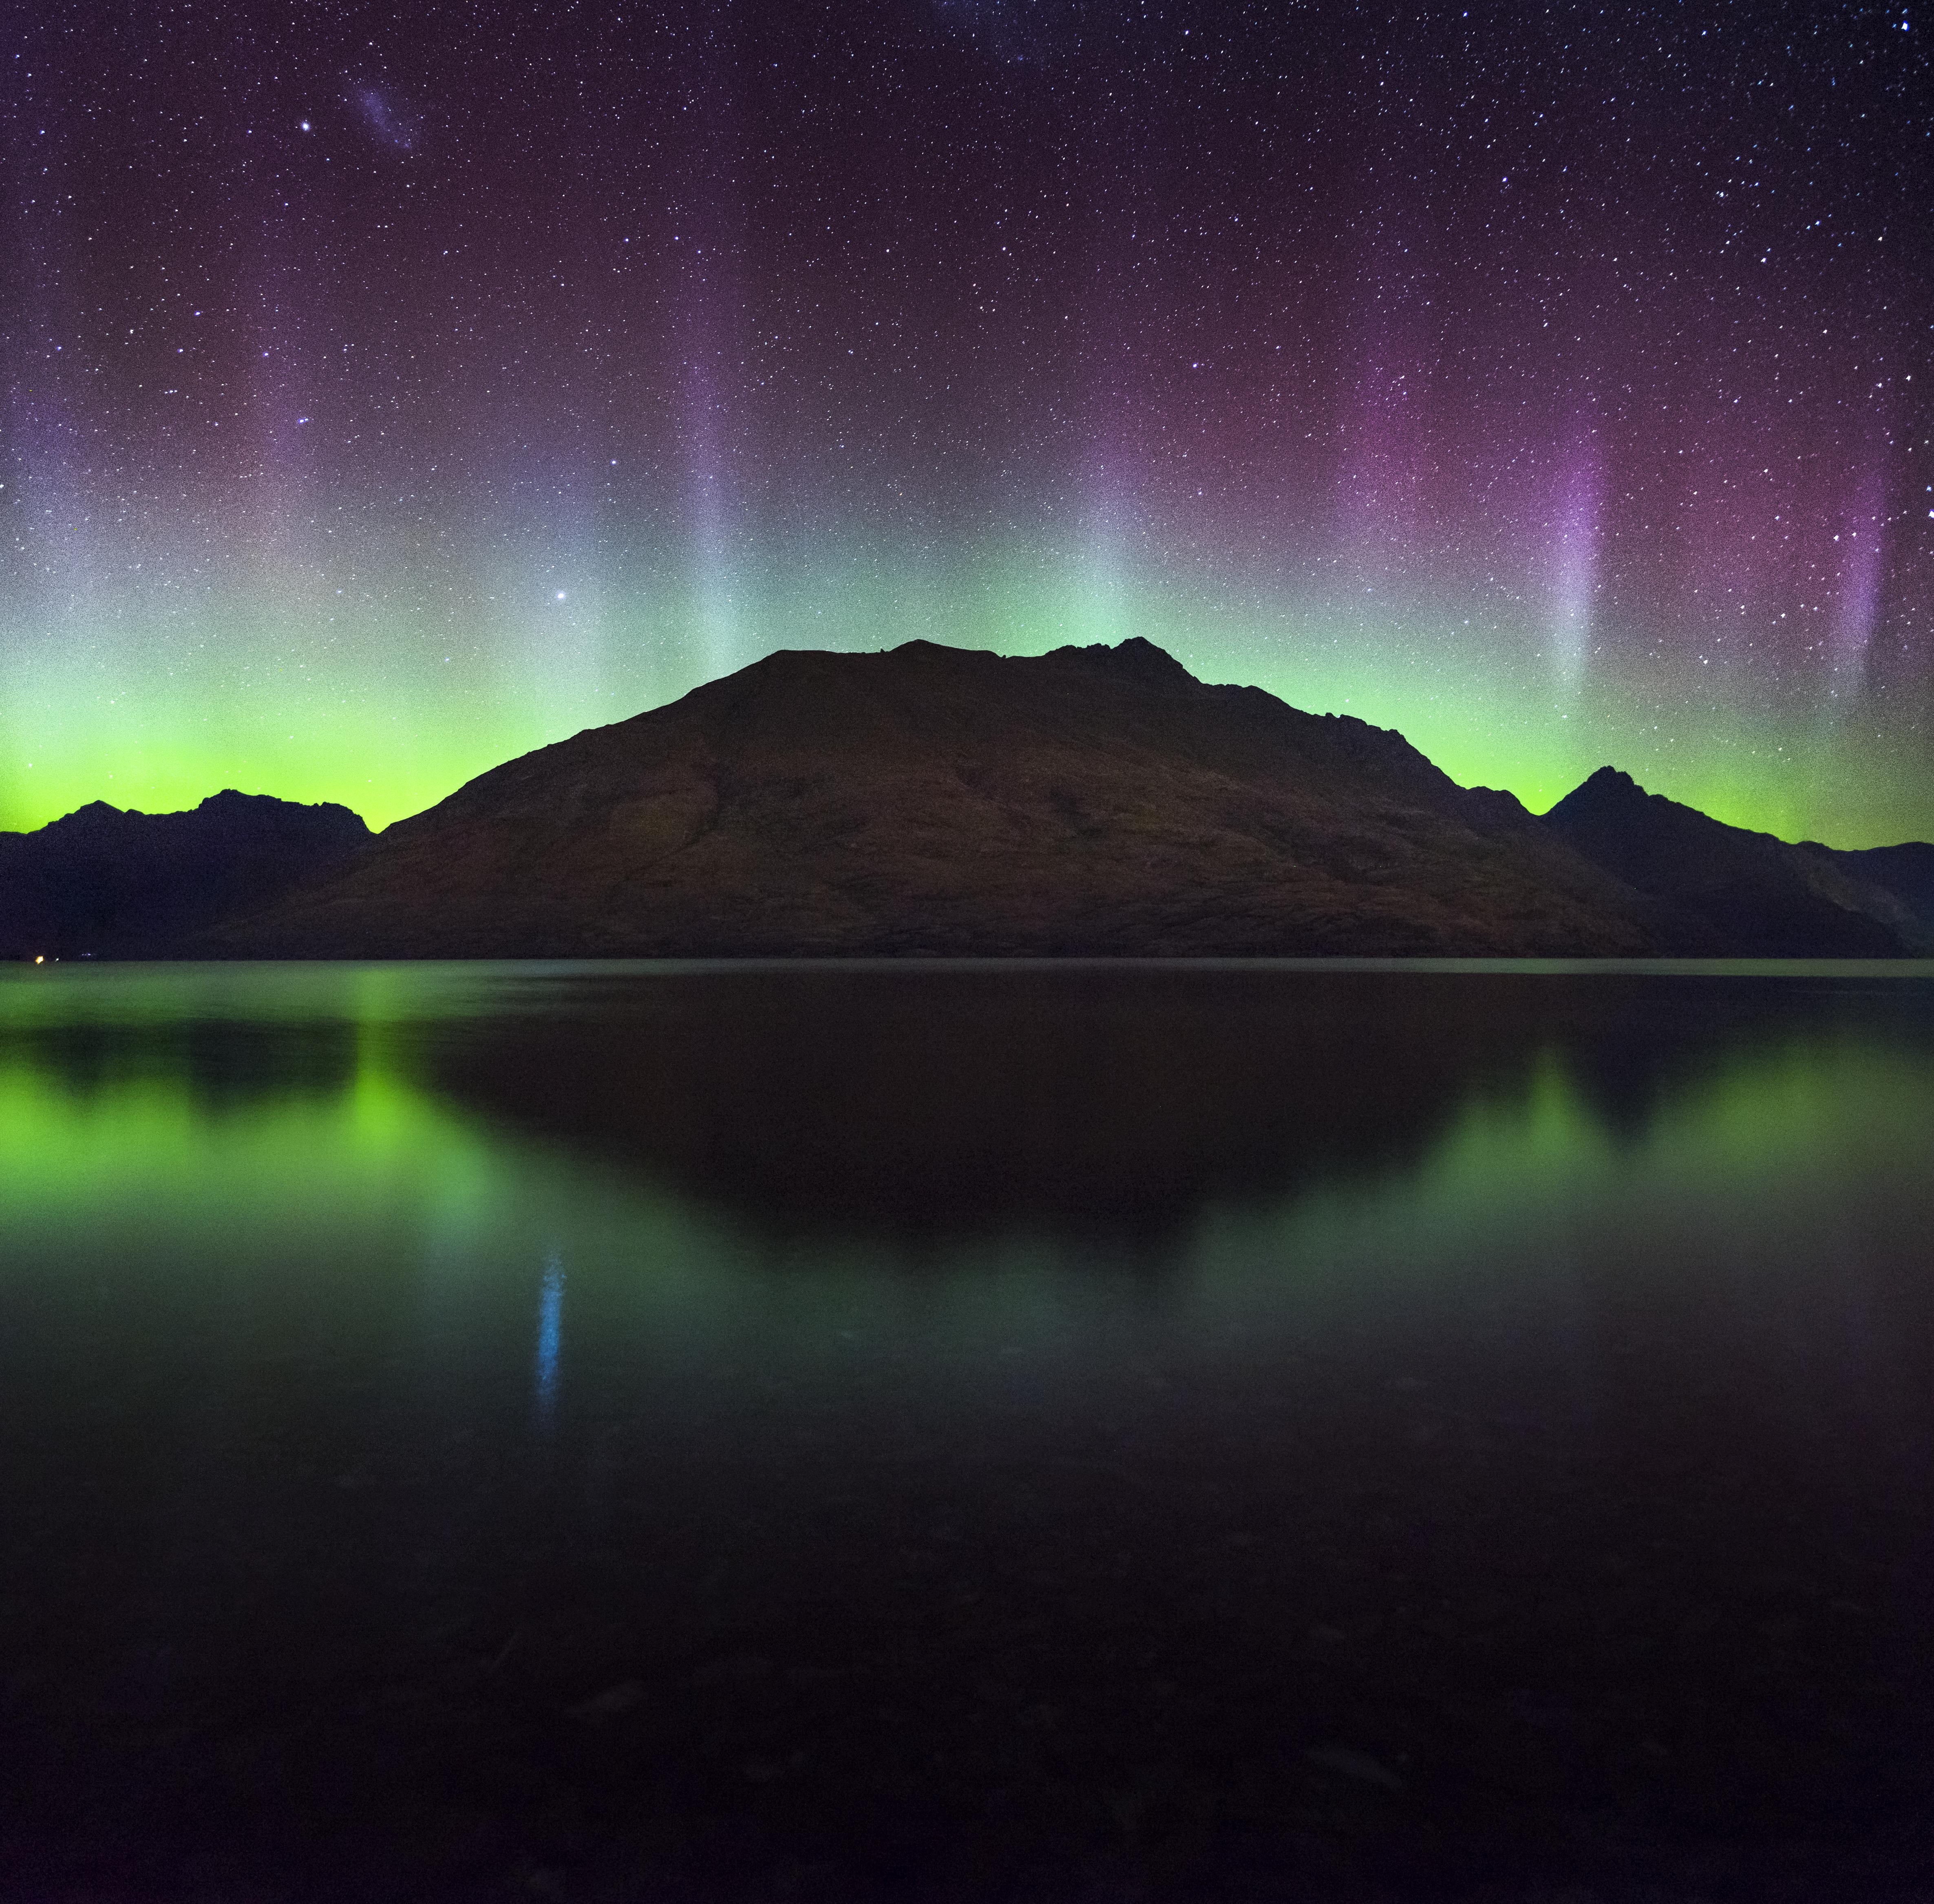 140483 Screensavers and Wallpapers New Zealand for phone. Download Nature, Mountain, Lake, New Zealand, Northern Lights, Aurora Borealis, Aurora, Queenstown pictures for free